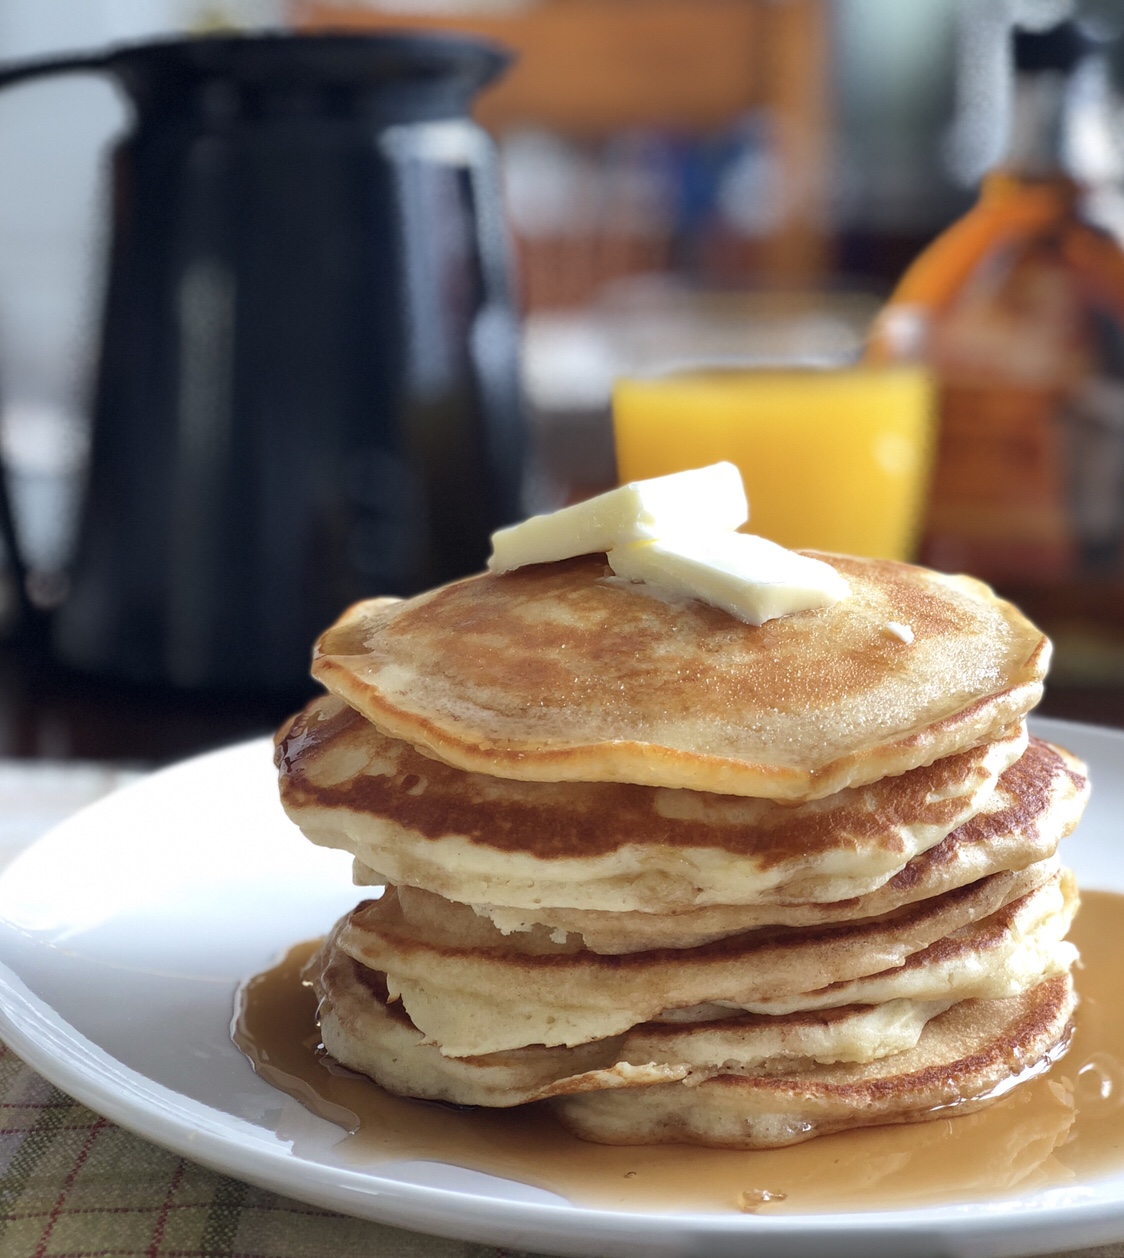 Light and Fluffy Pancakes by Happylifeblogspot.com #pancakes #fromscratchpancakes #breakfastrecipes #brunchrecipes #howtomakepancakes #fluffypancakes